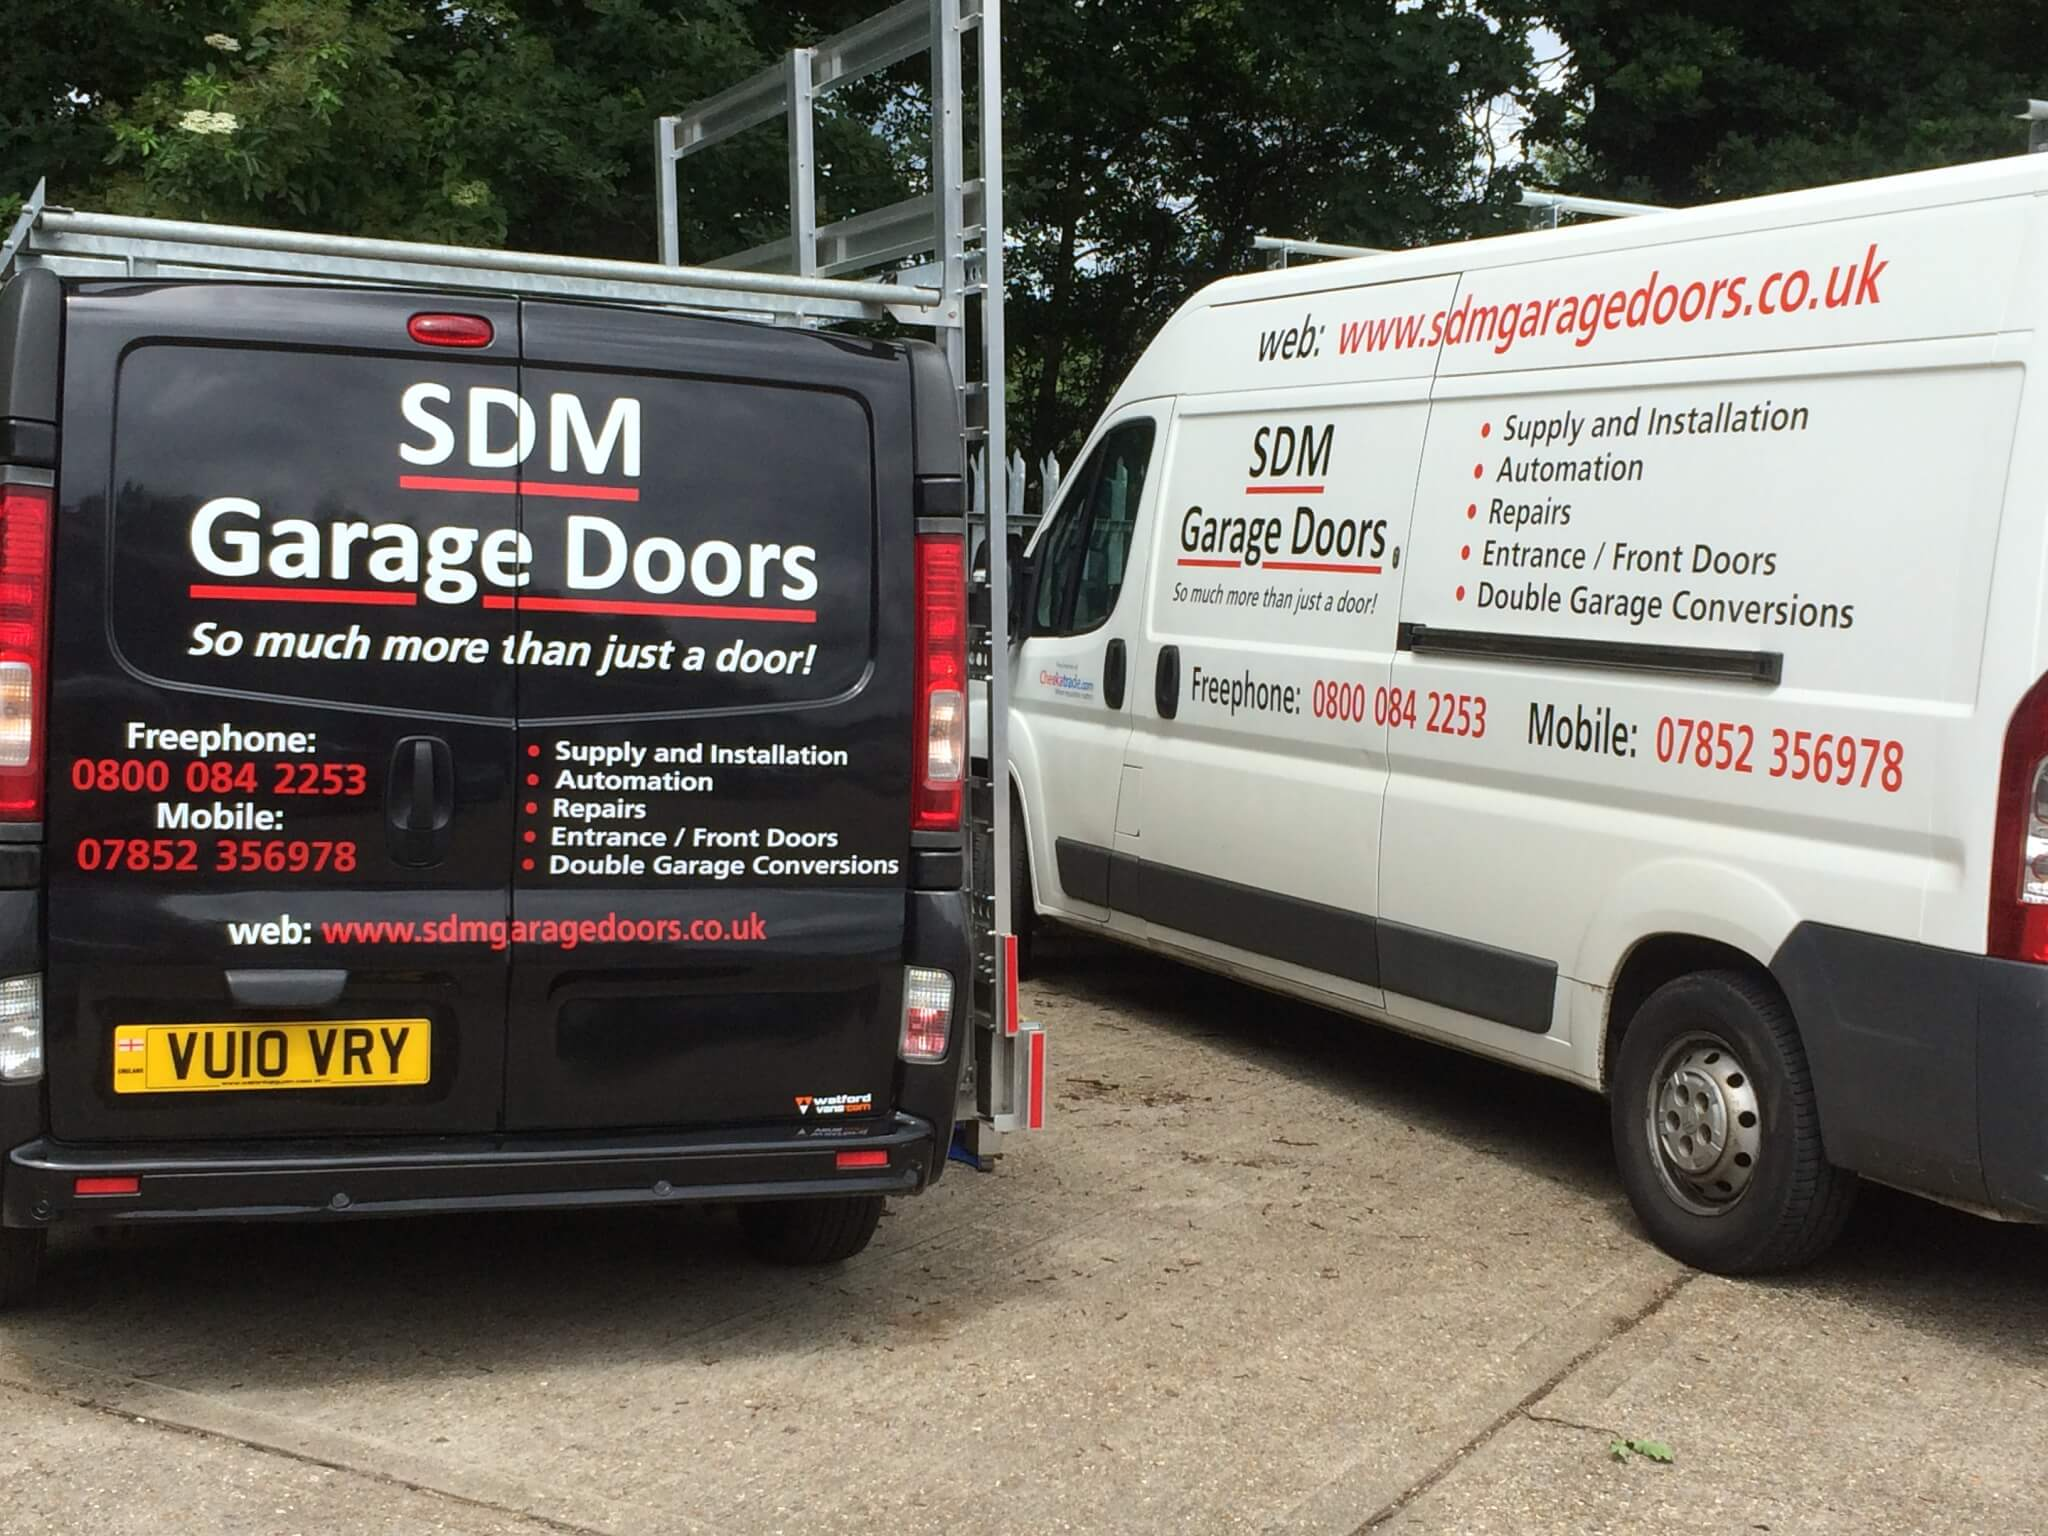 2448 #A4272C Us Sdm Garage Doors Are One Of The Leading Garage Door Front Door  image Garage Doors Company 35833264